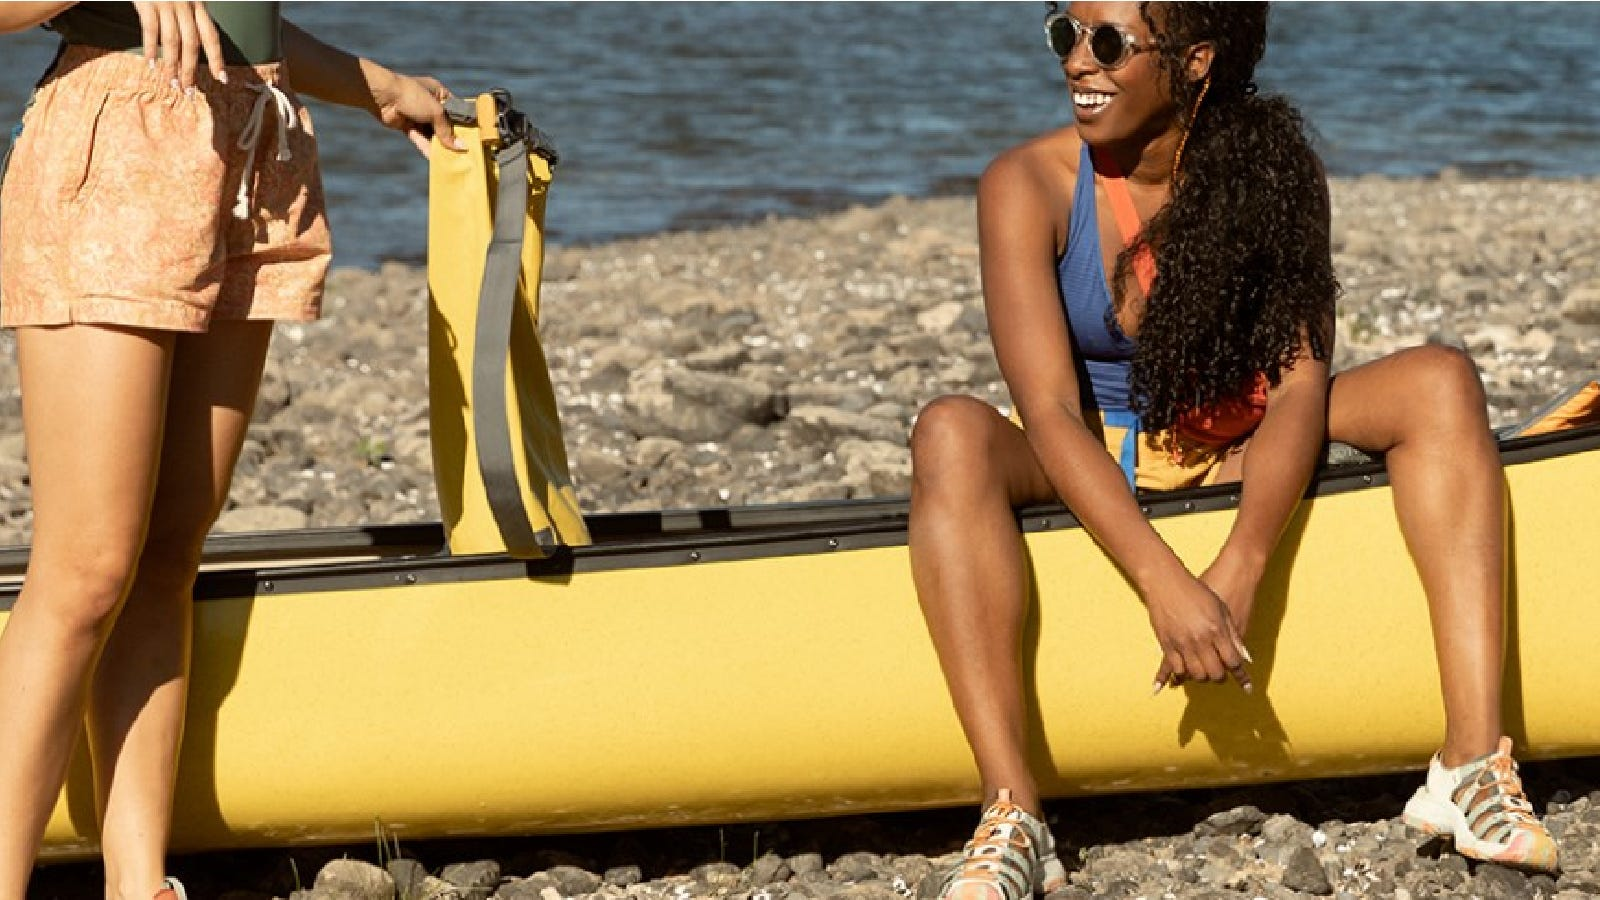 Two women outdoors getting ready to go kayaking, while wearing comfortable Keen hiking sandals.